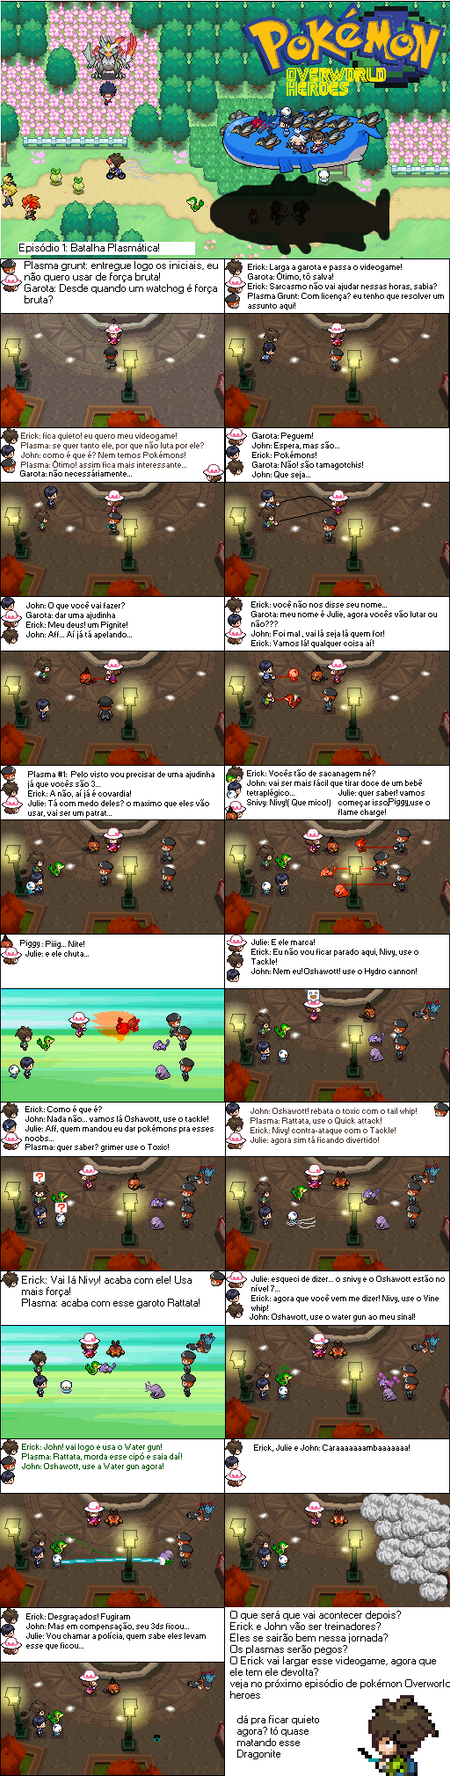 Pokemon Overworld Heroes #1: A plasmatic Battle! by Erick8530